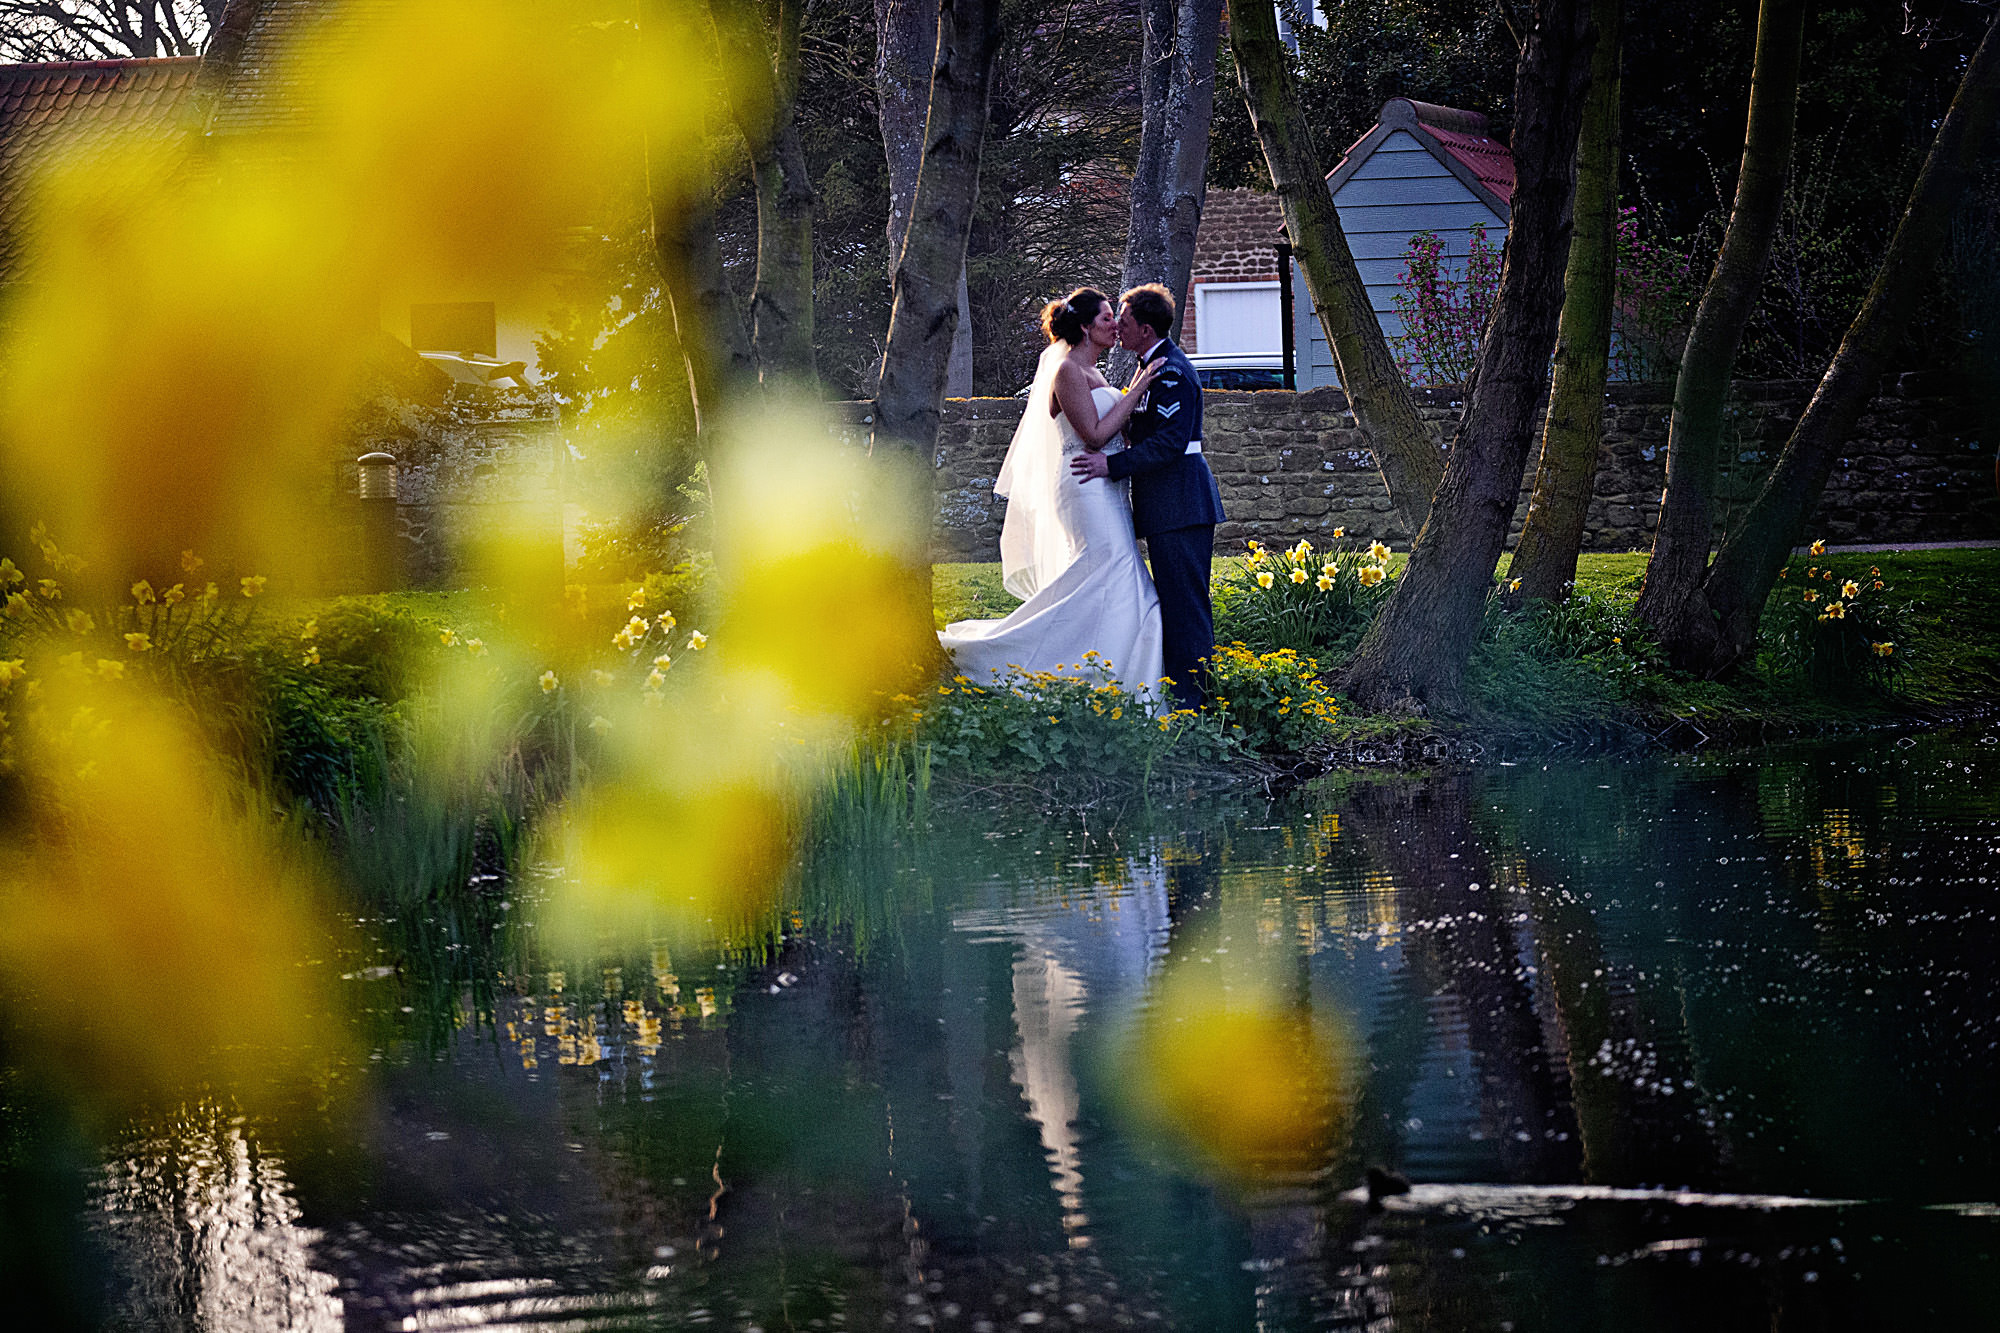 heacham-manor-wedding-photos (35).jpg